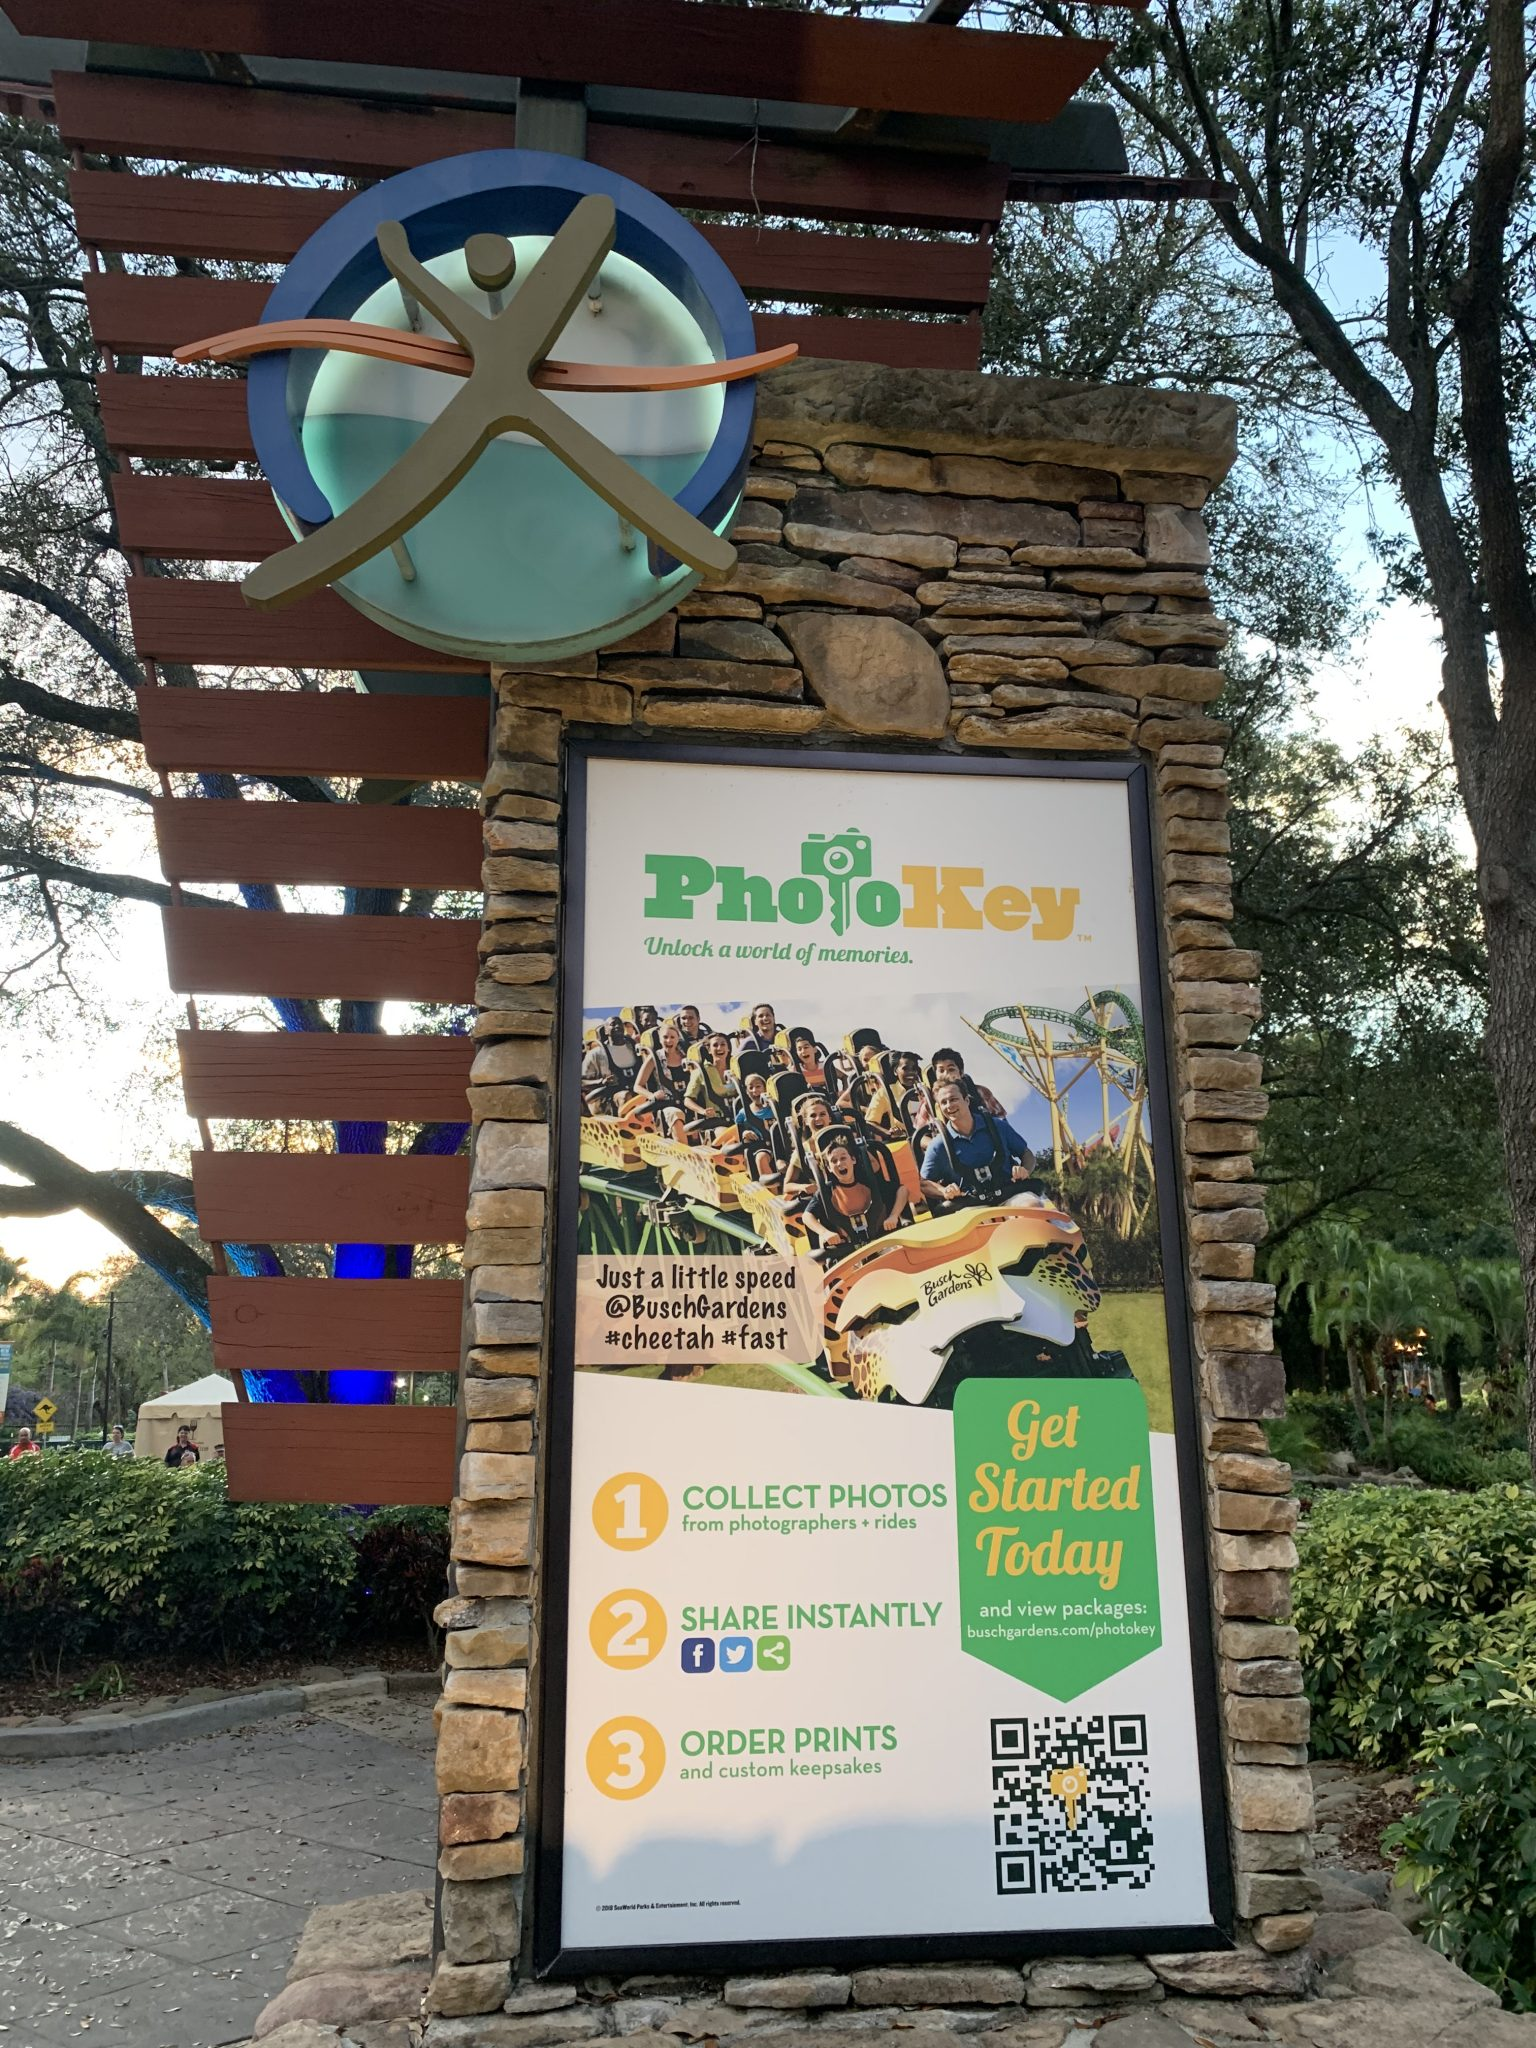 Busch Gardens Tampa Bay photo key photo download service